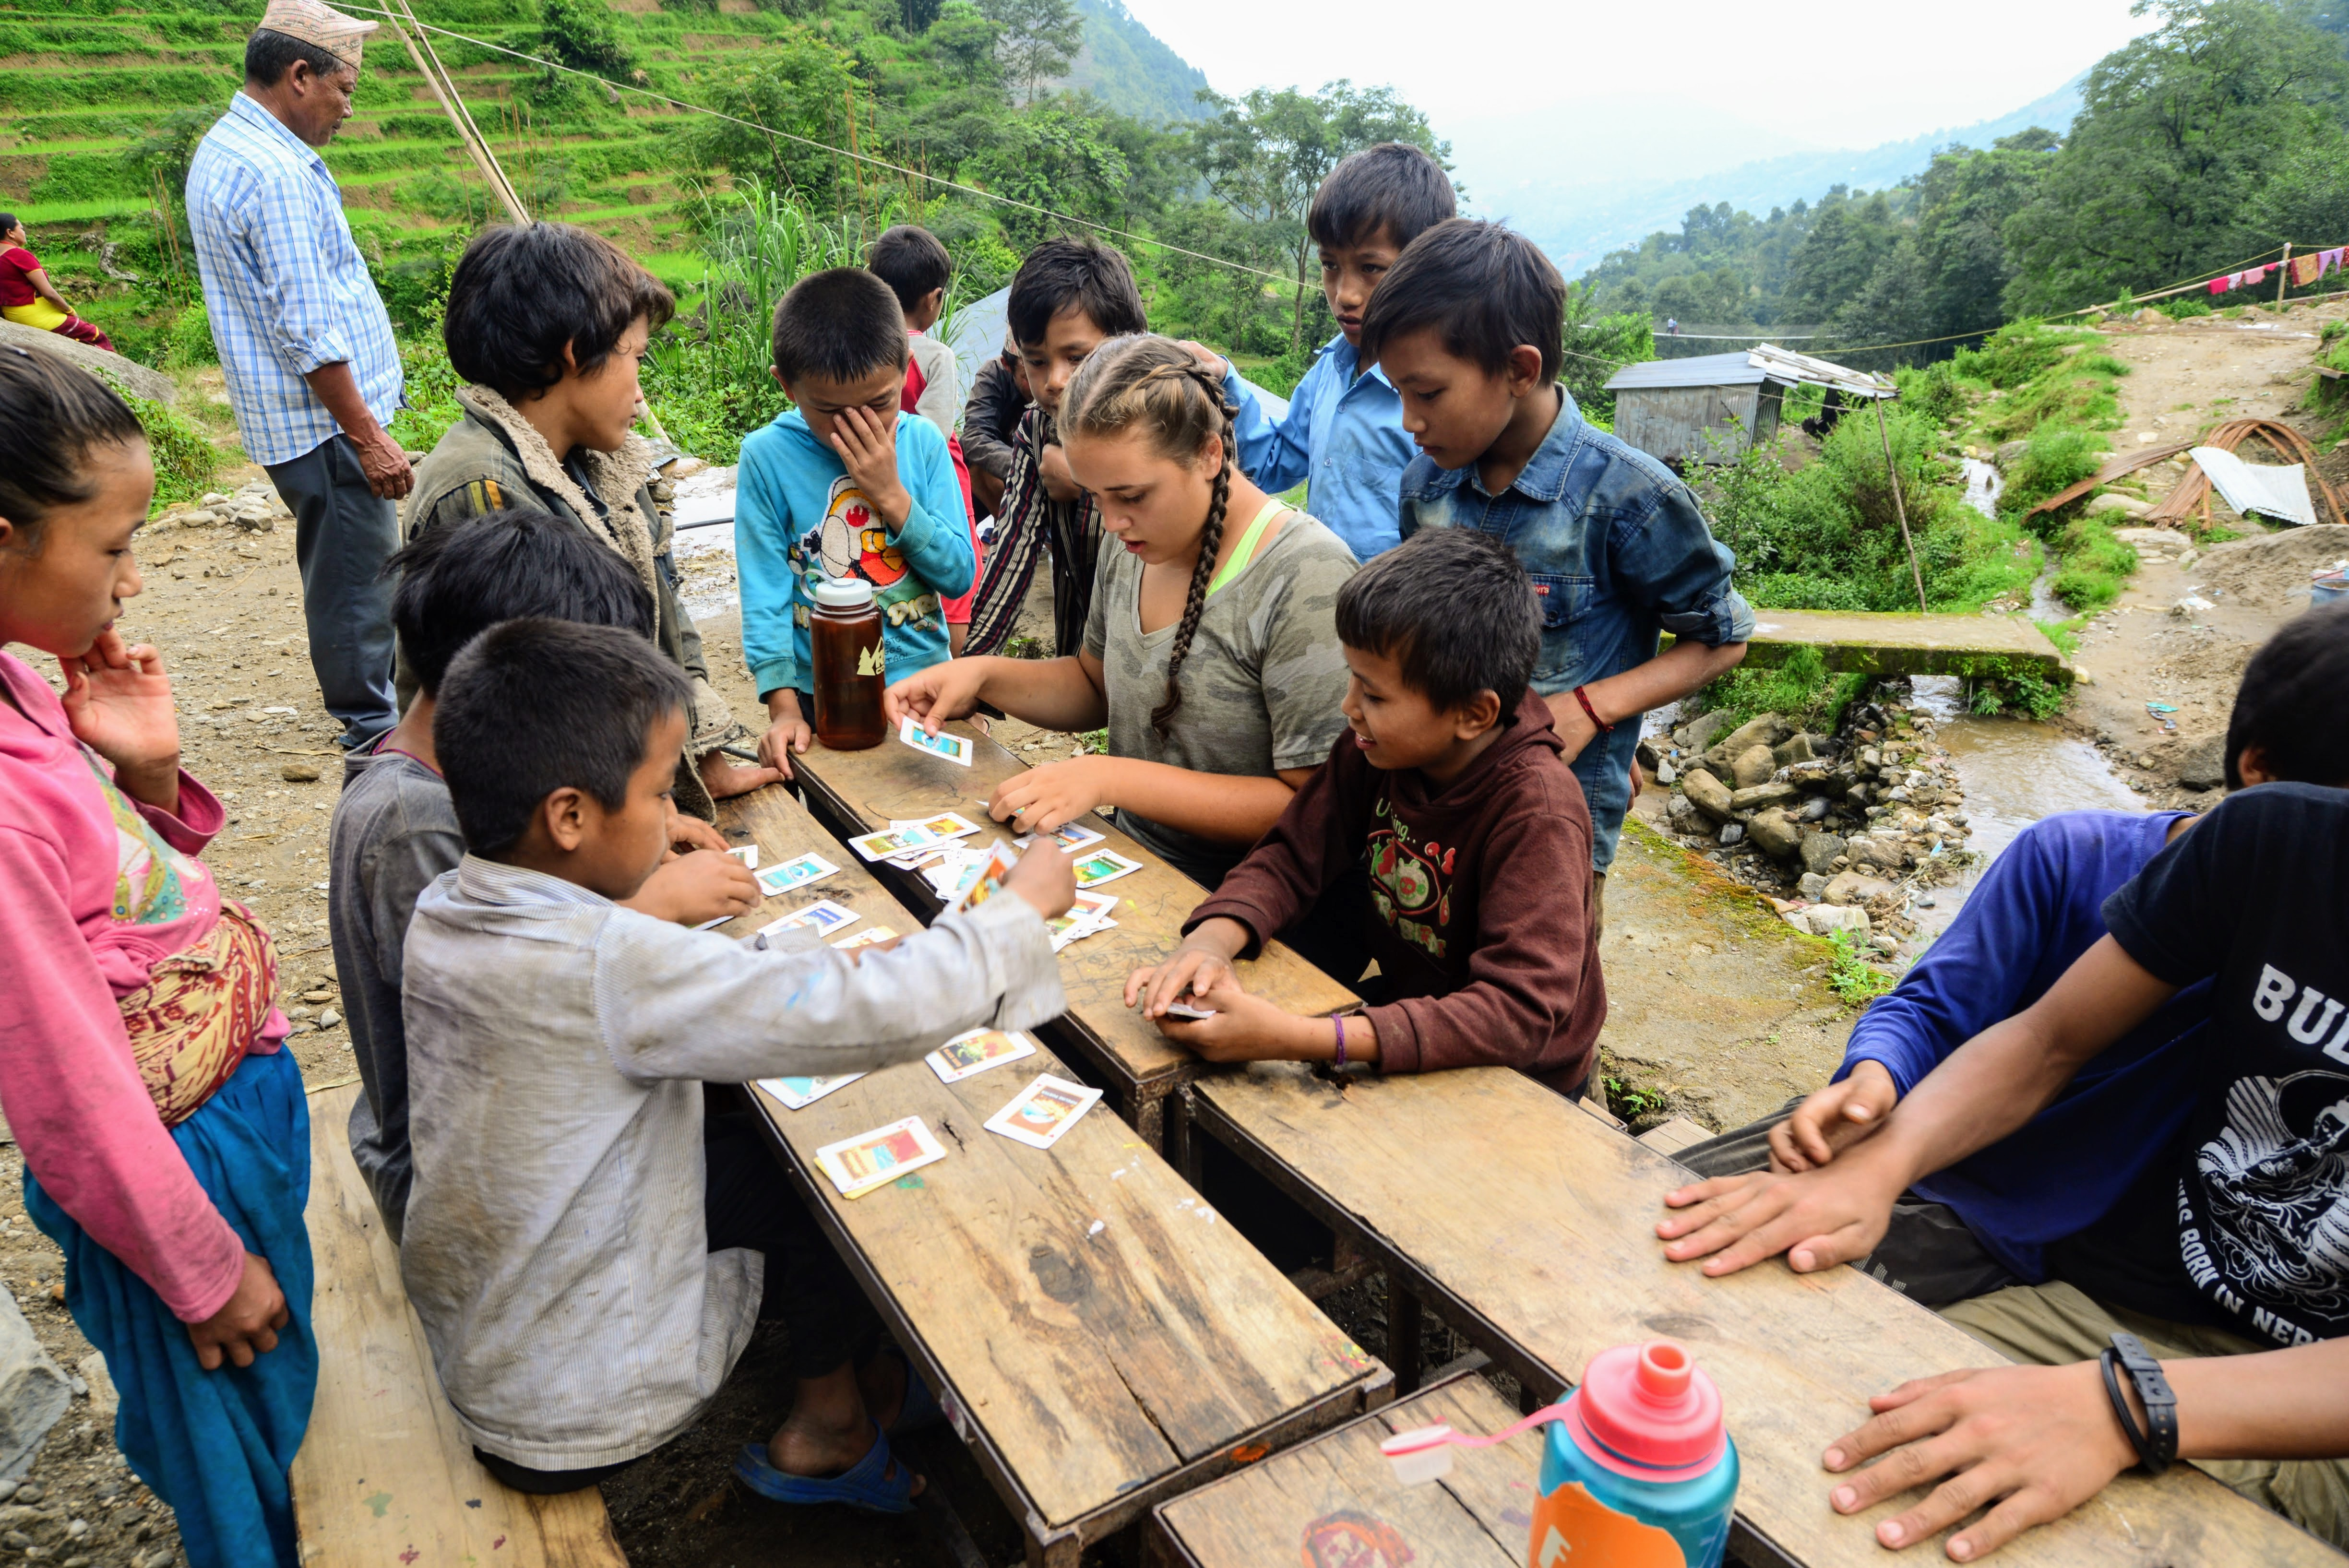 Global Routes: Nepal. The Roof of the World. Service and Cultural Immersion.